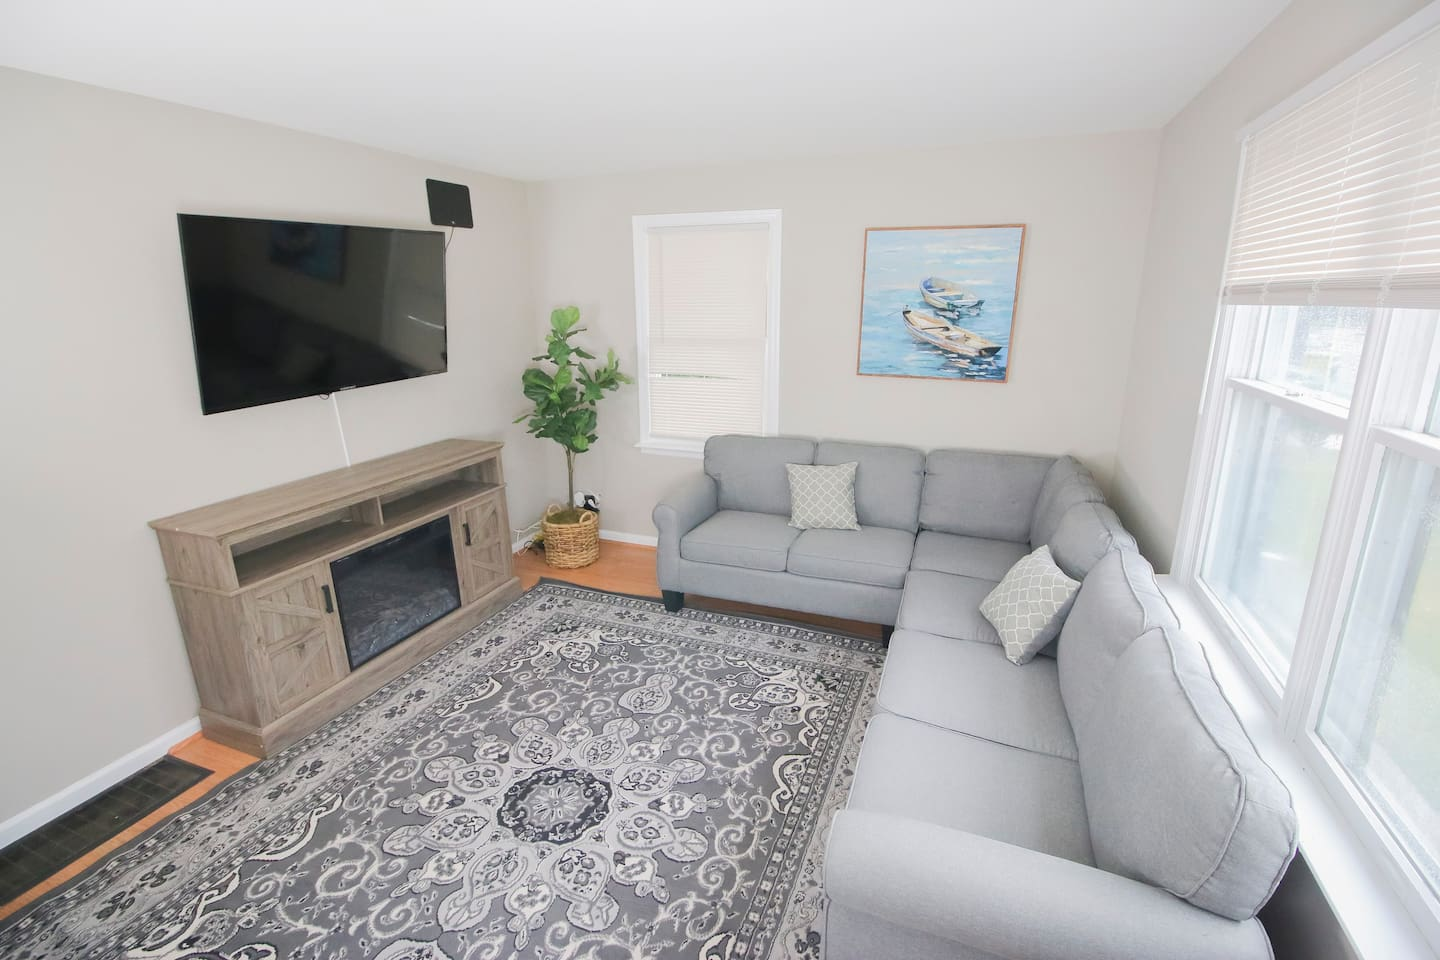 Cozy living room with wall mounted TV.